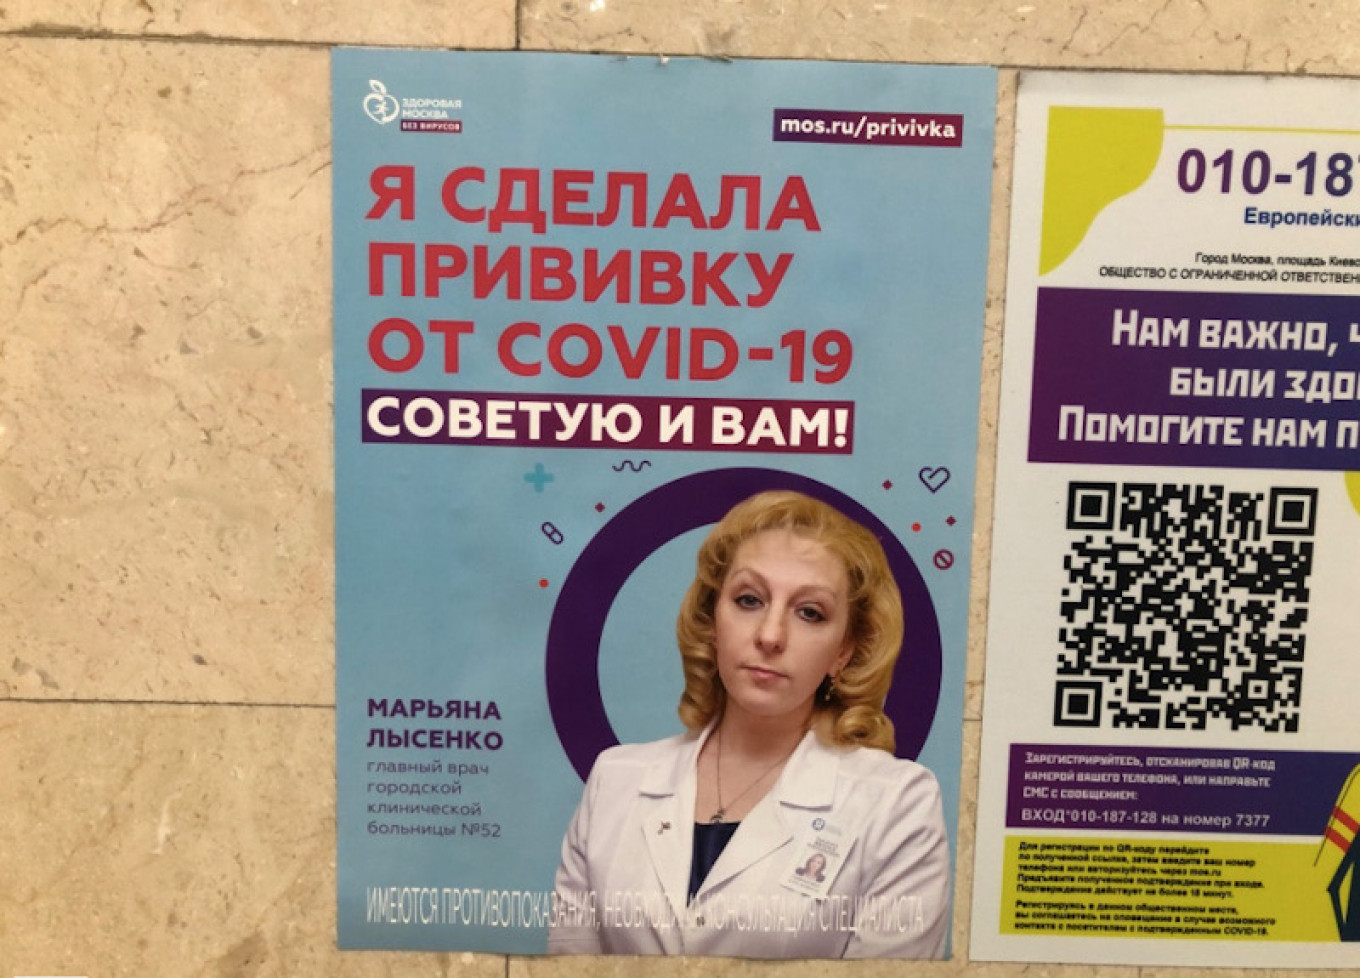 A named doctor from a coronavirus hospital advises the public to get vaccinated. Felix Light / MT